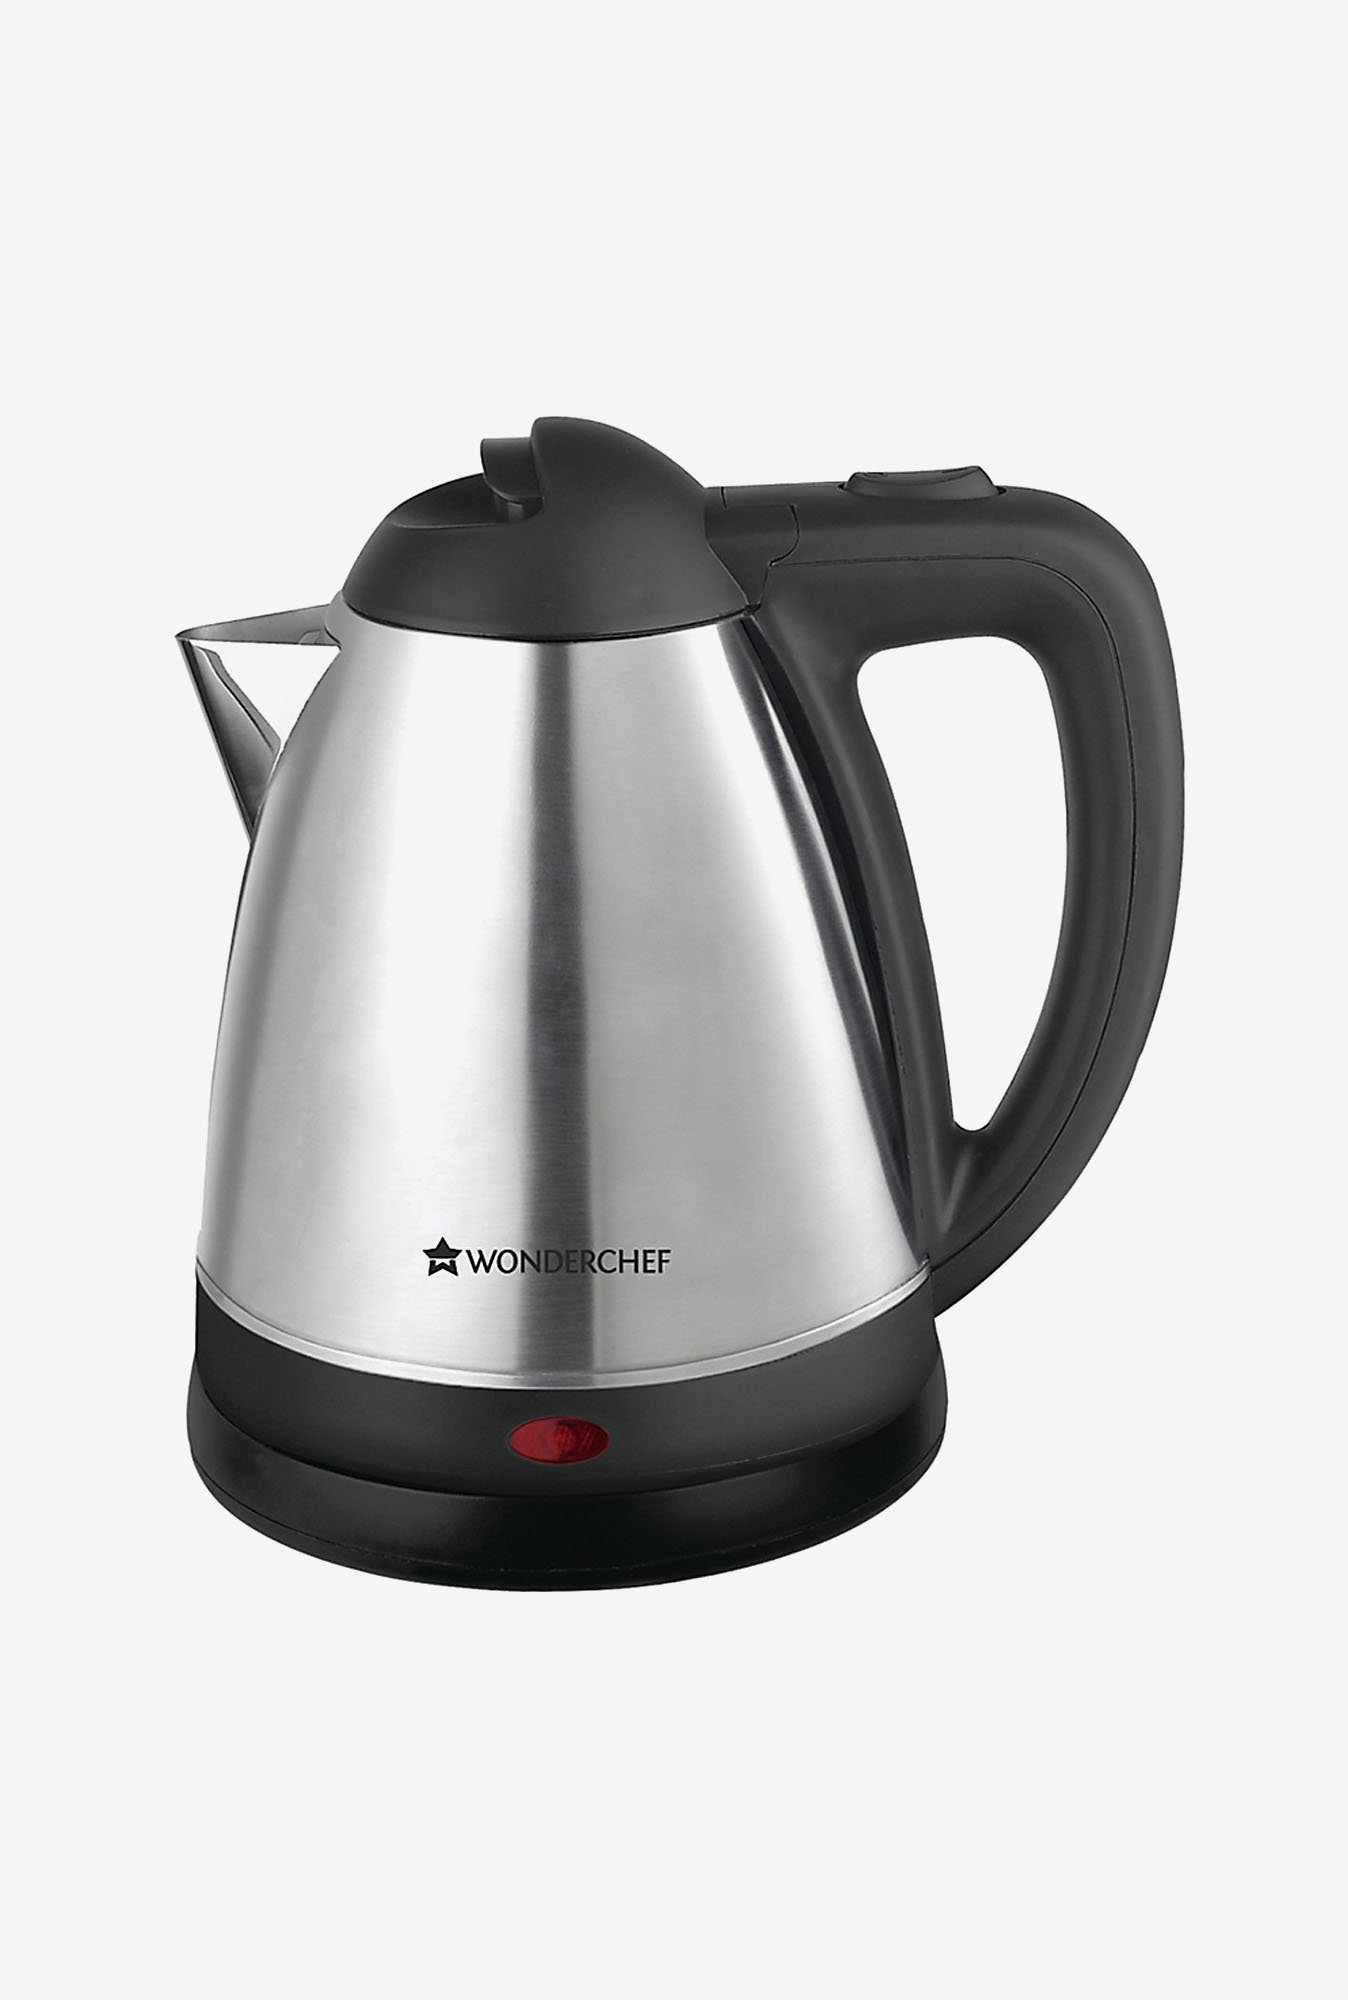 Wonderchef Prato 1.5 L 1800 W Cordless Kettle (Silver)